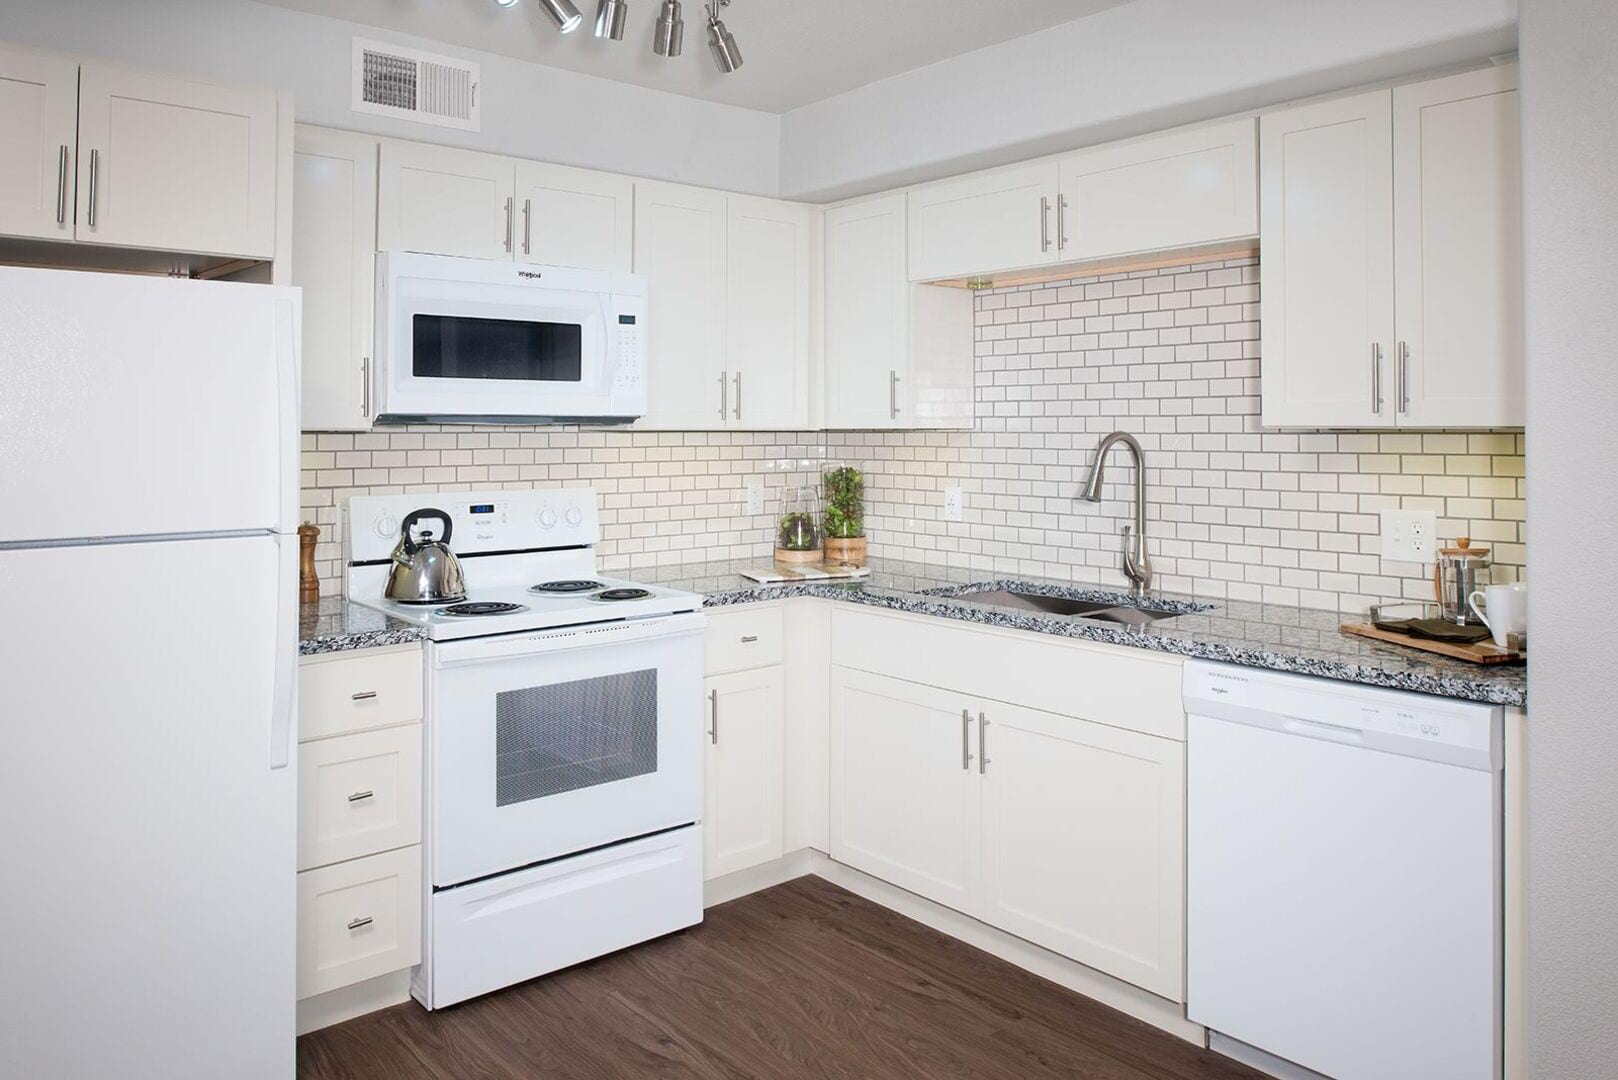 Apartments for Rent in Las Vegas, NV | Attiva Court - Home